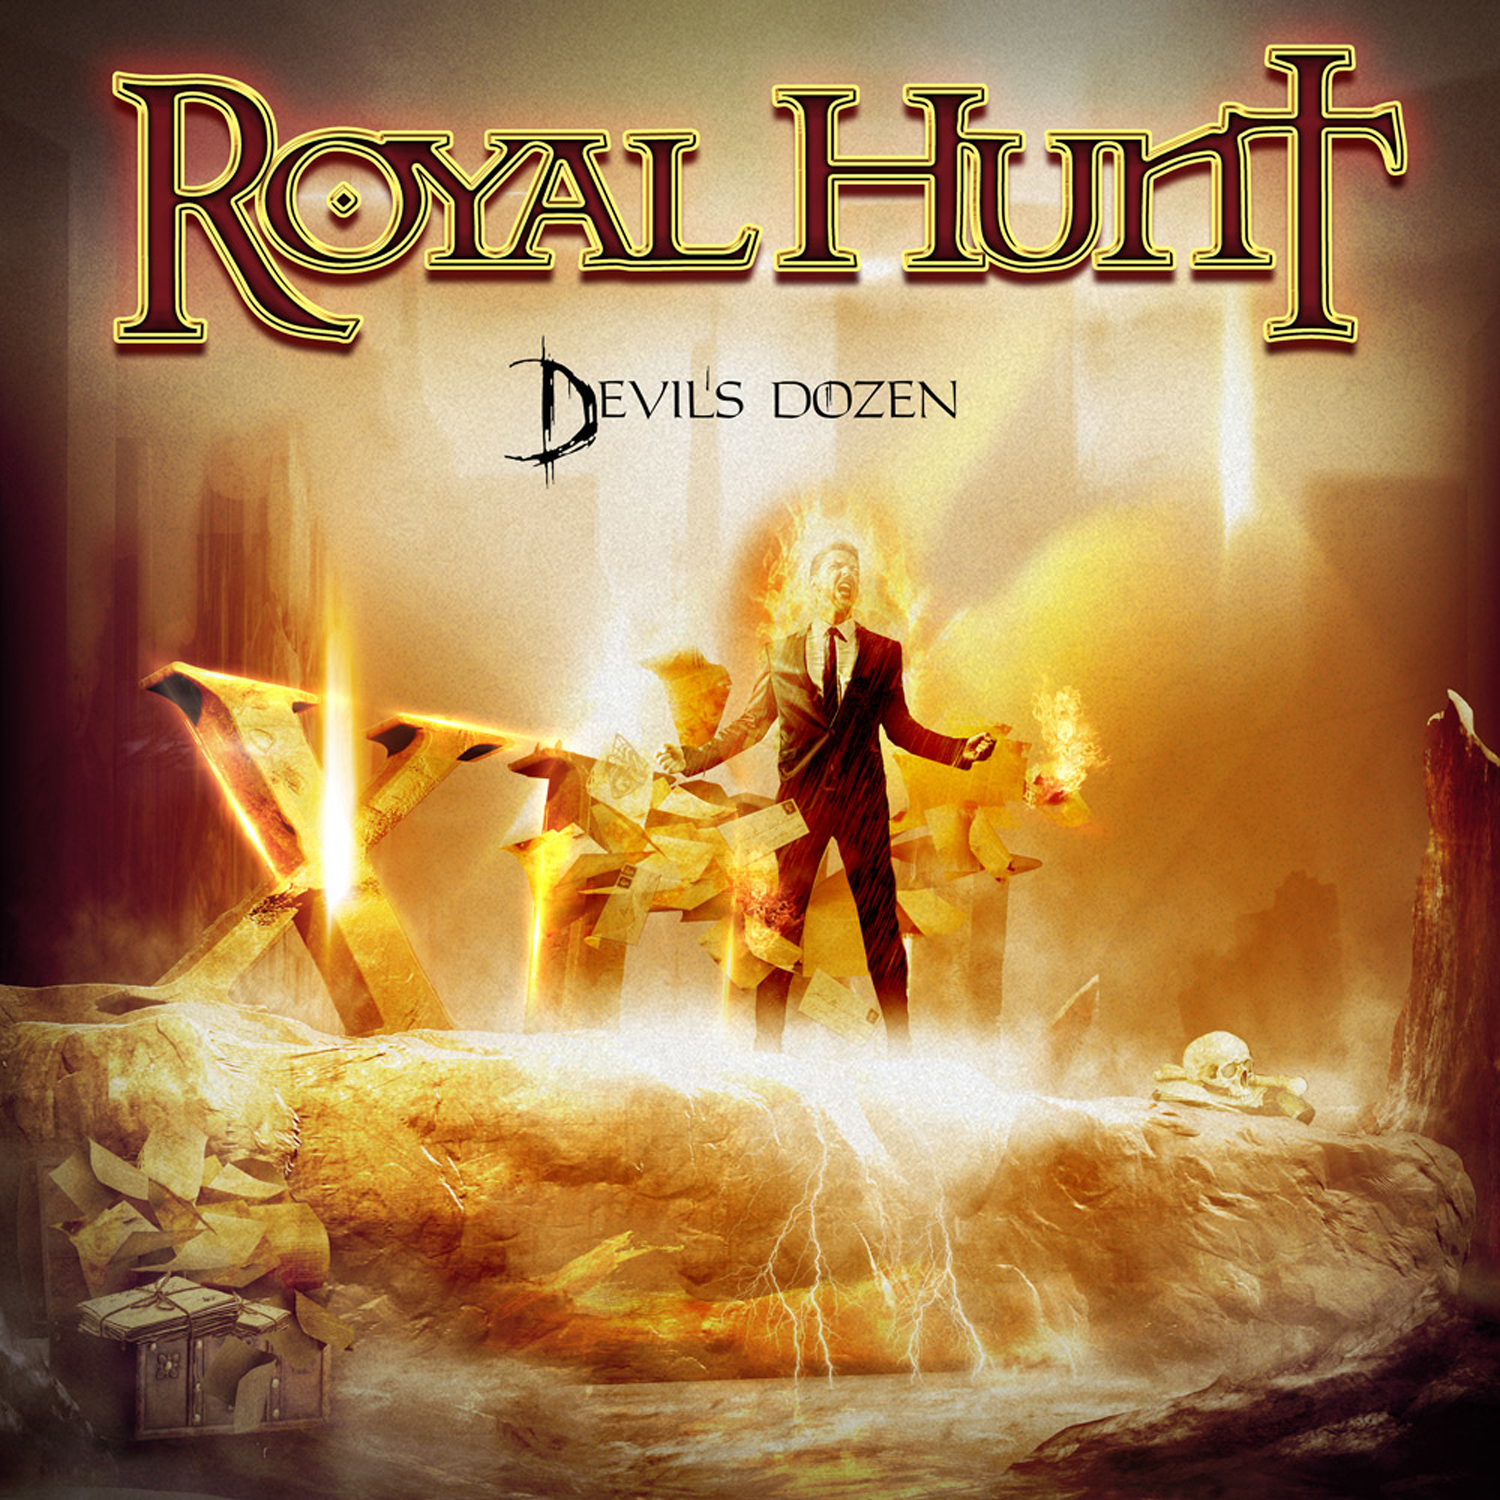 Royal Hunt – XIII Devil's Dozen Review